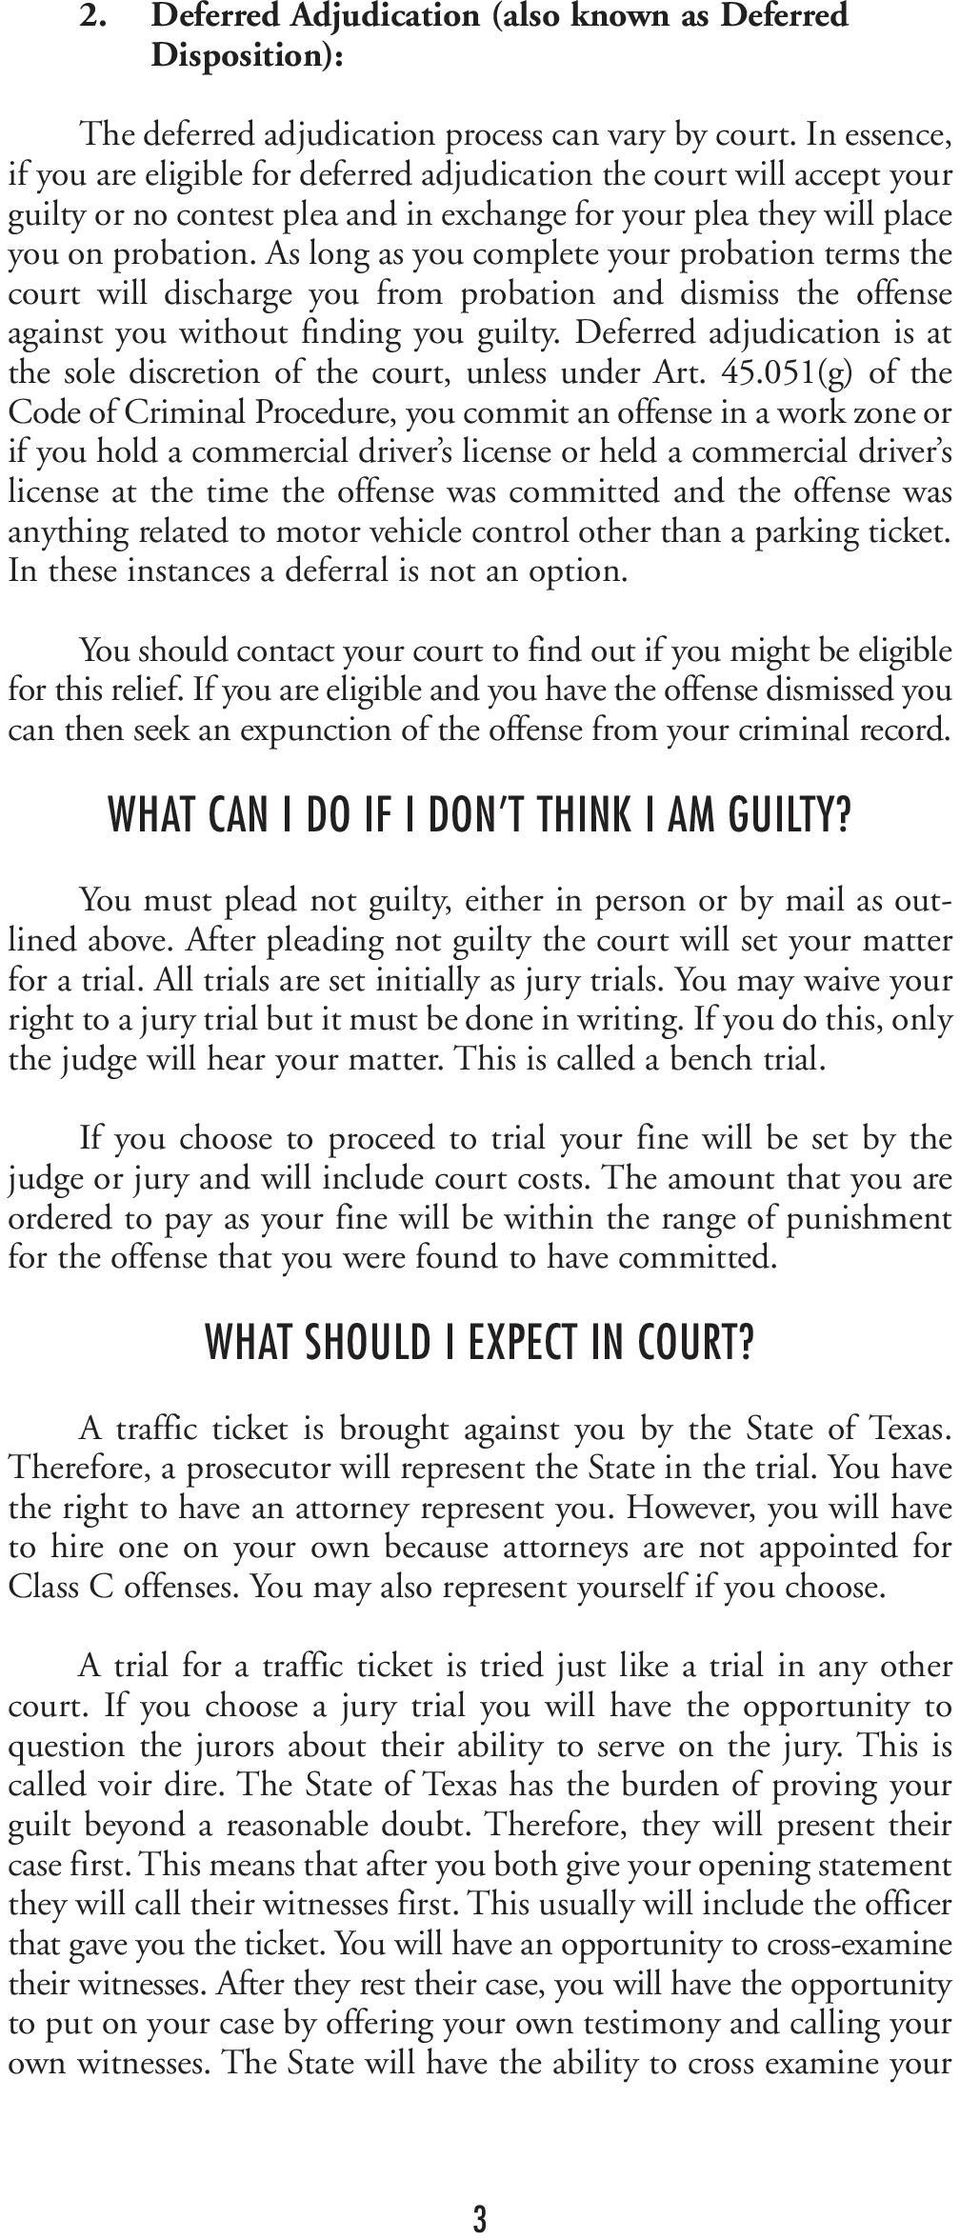 As long as you complete your probation terms the court will discharge you from probation and dismiss the offense against you without finding you guilty.